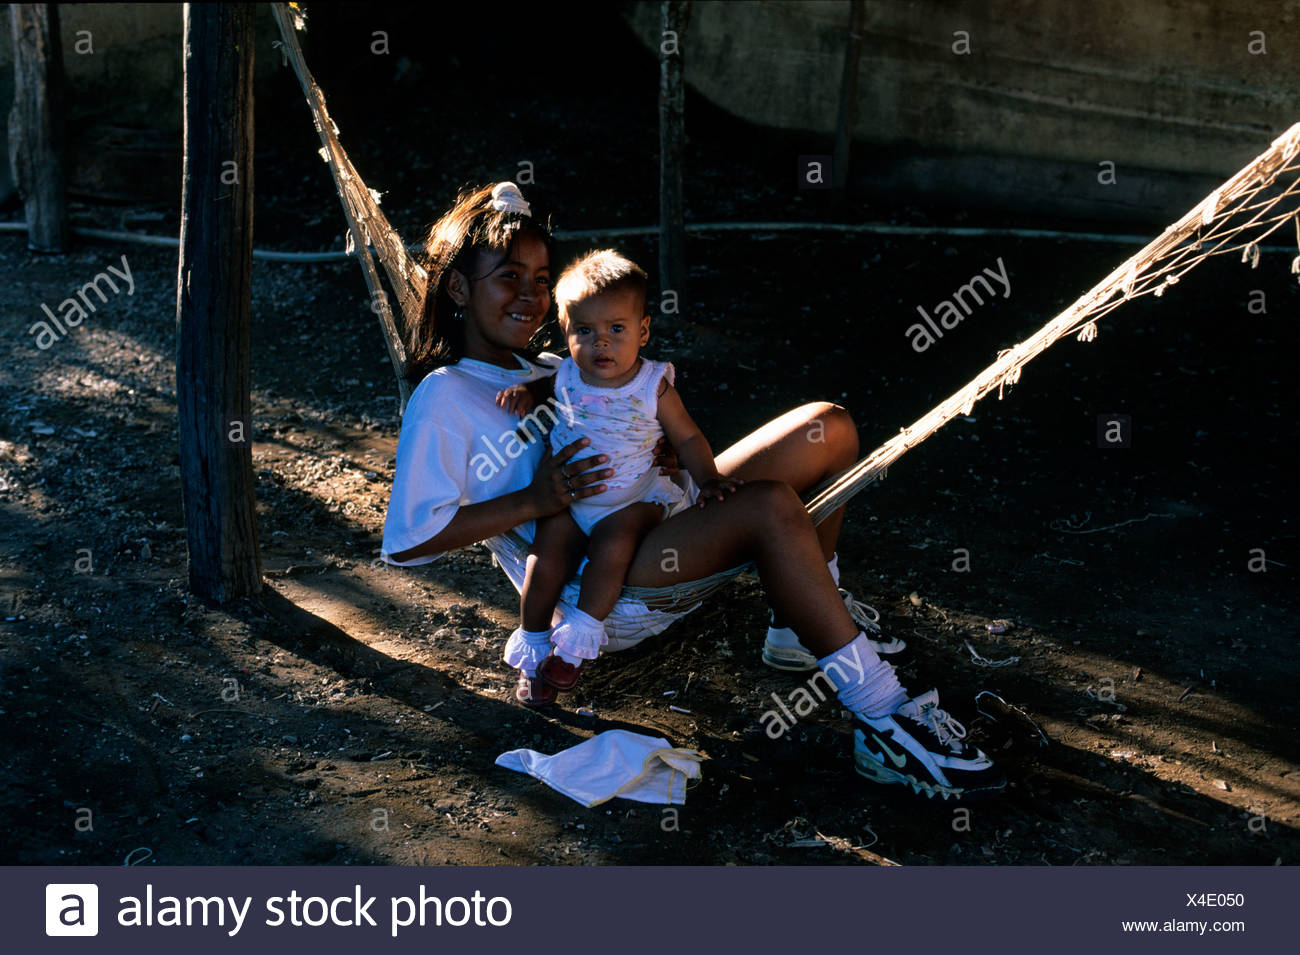 Mexico Nayarit Mexcaltitan children in hammock - Stock Image